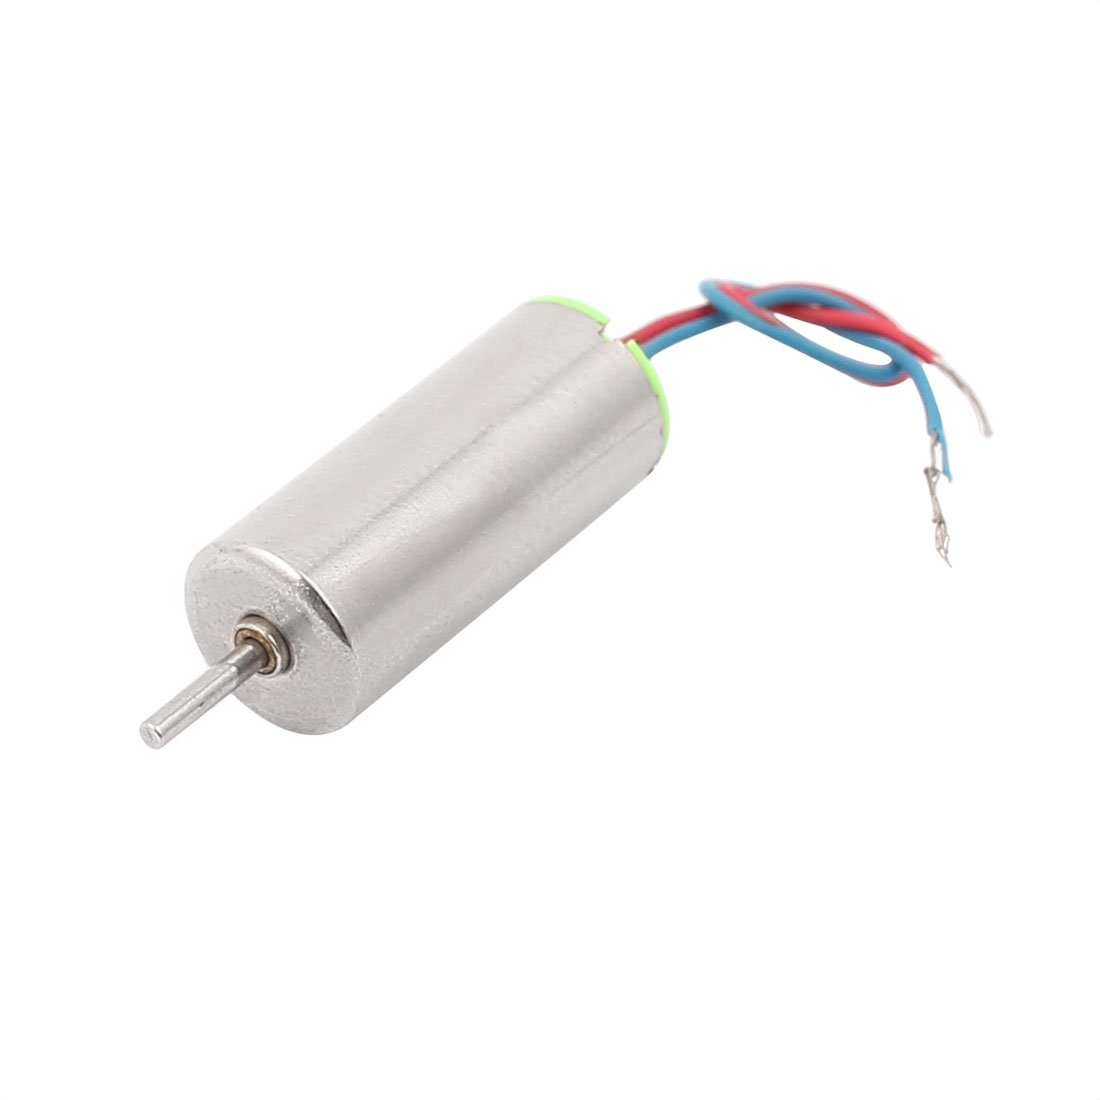 sourcingmap® DC1.5-4.5V 41509RPM Speed High Torque Magnetic Coreless Motor for RC Model US-SA-AJD-275687